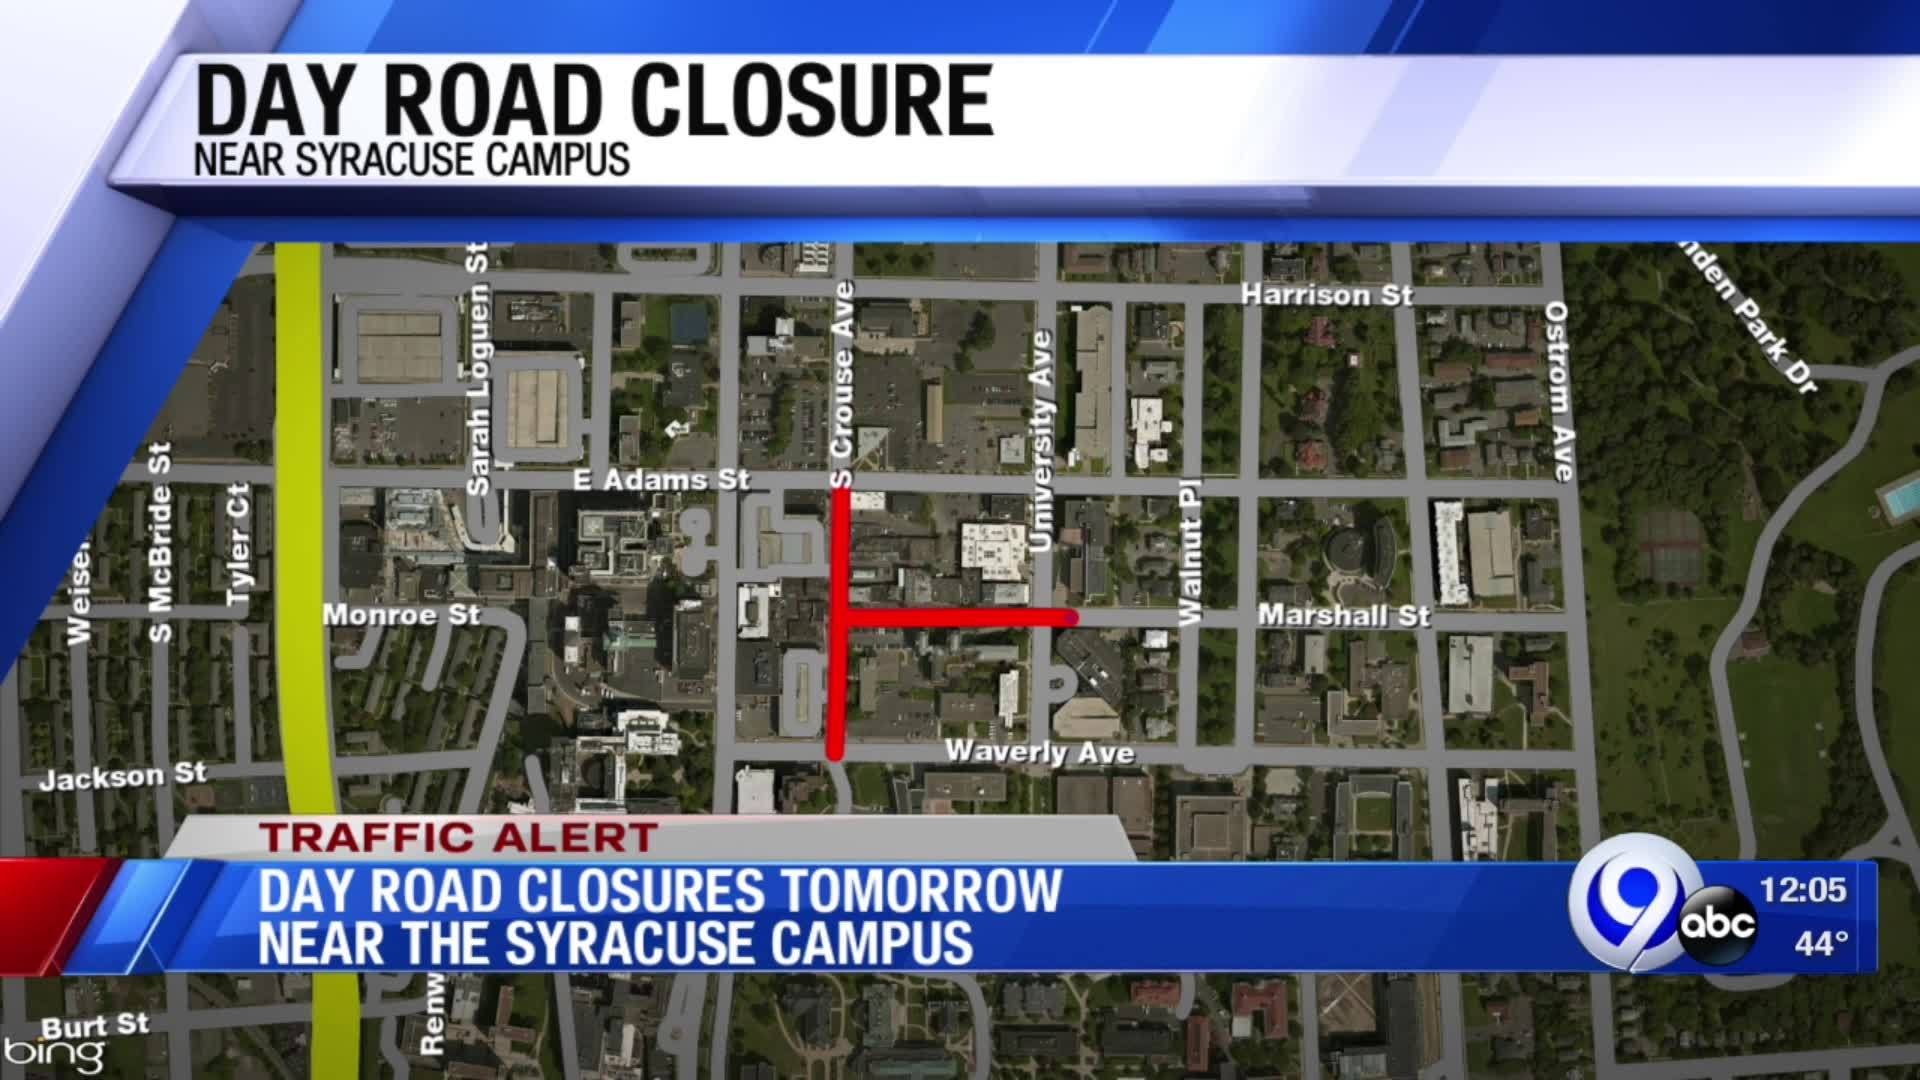 Road_closures_on_SU_hill_on_Wednesday_7_20190514162436